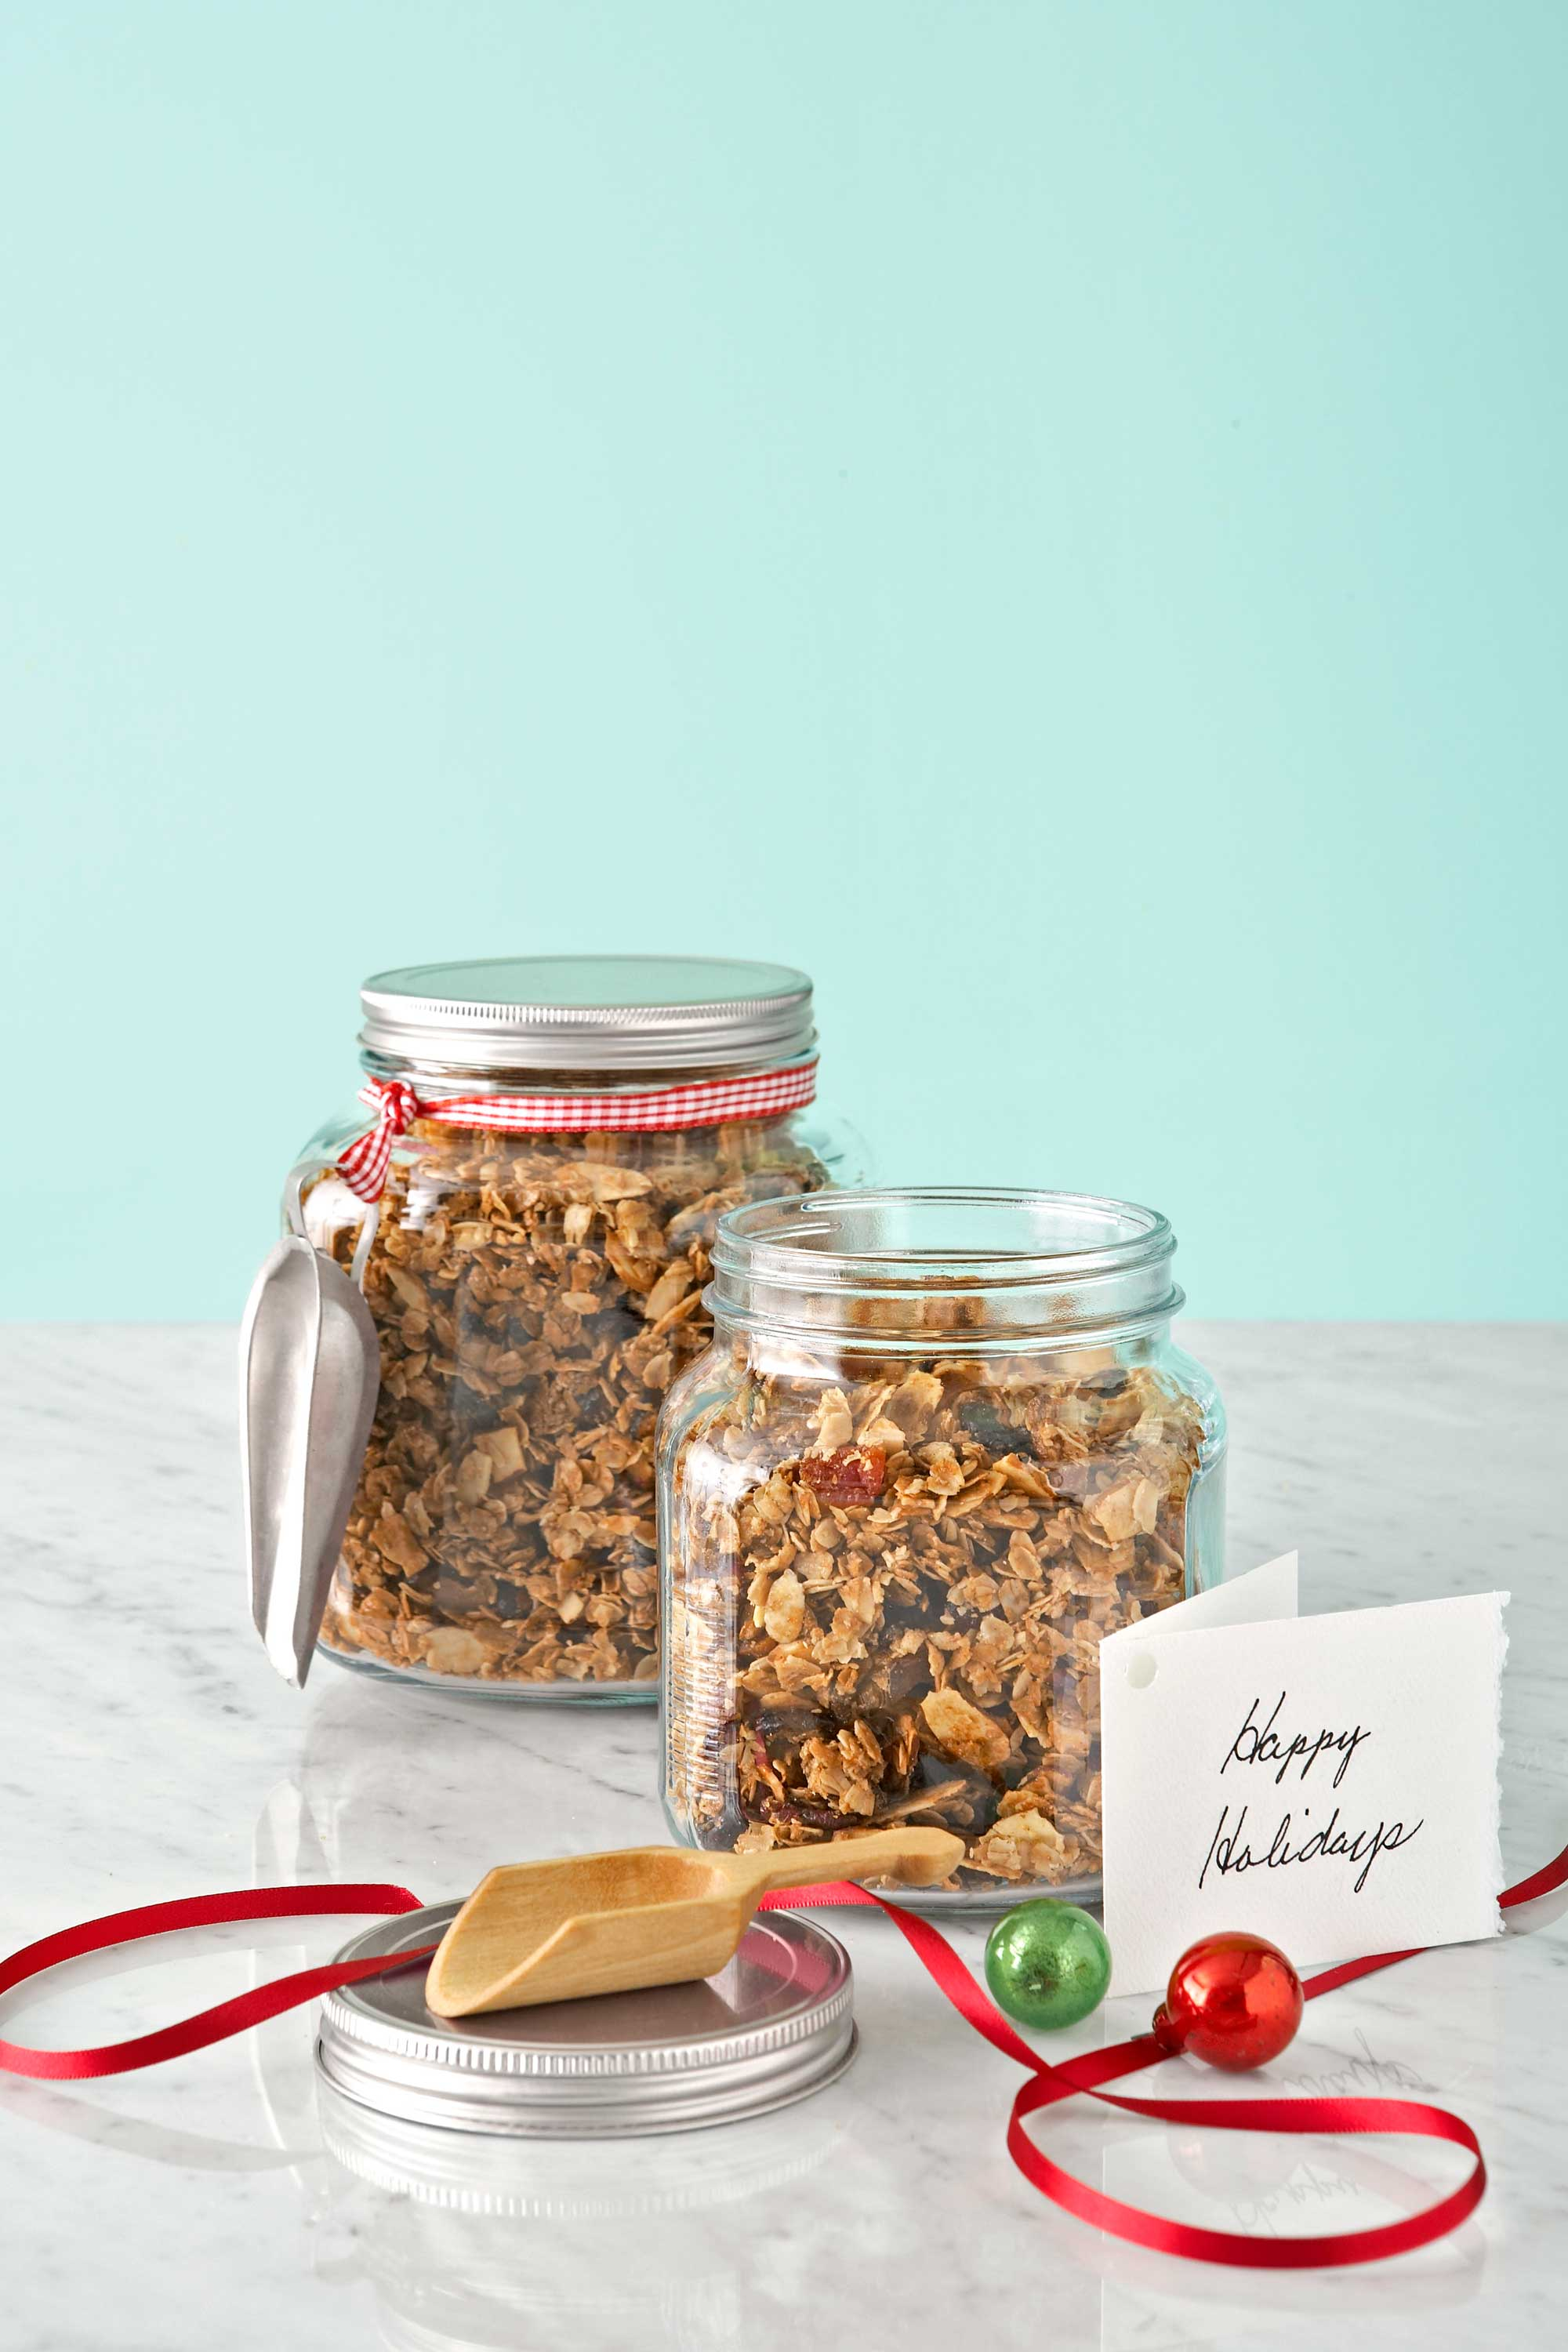 36 Homemade Christmas Food Gifts - Edible Holiday Gift IdeasHandmade Christmas Gifts